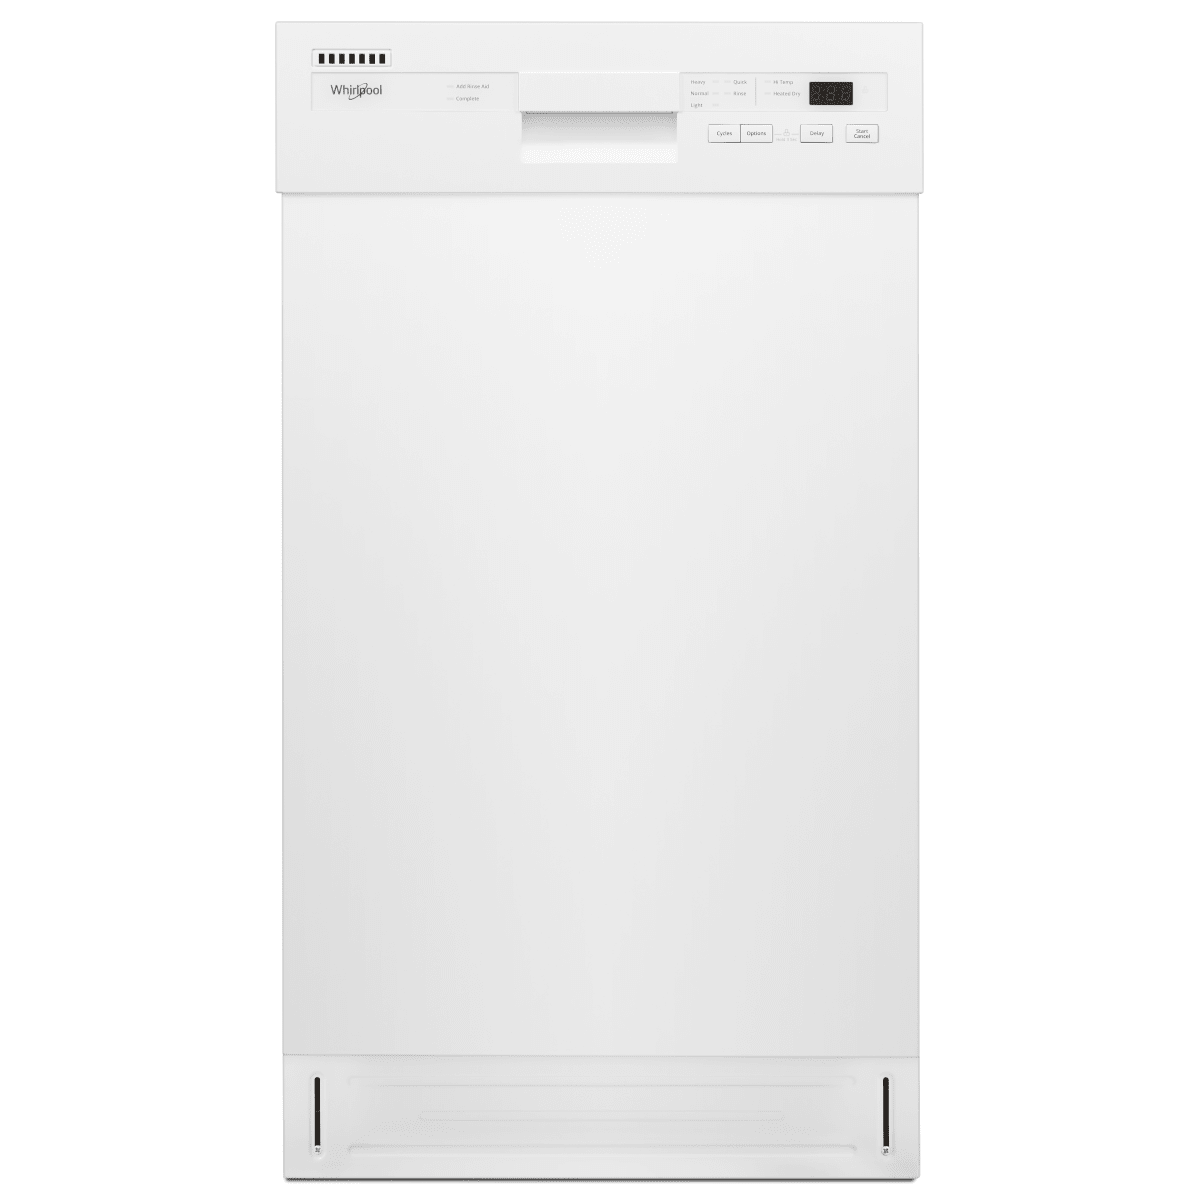 Whirlpool 18 Inch Wide 8 Place Setting Energy Star Rated Built-In Fully Integrated Dishwasher